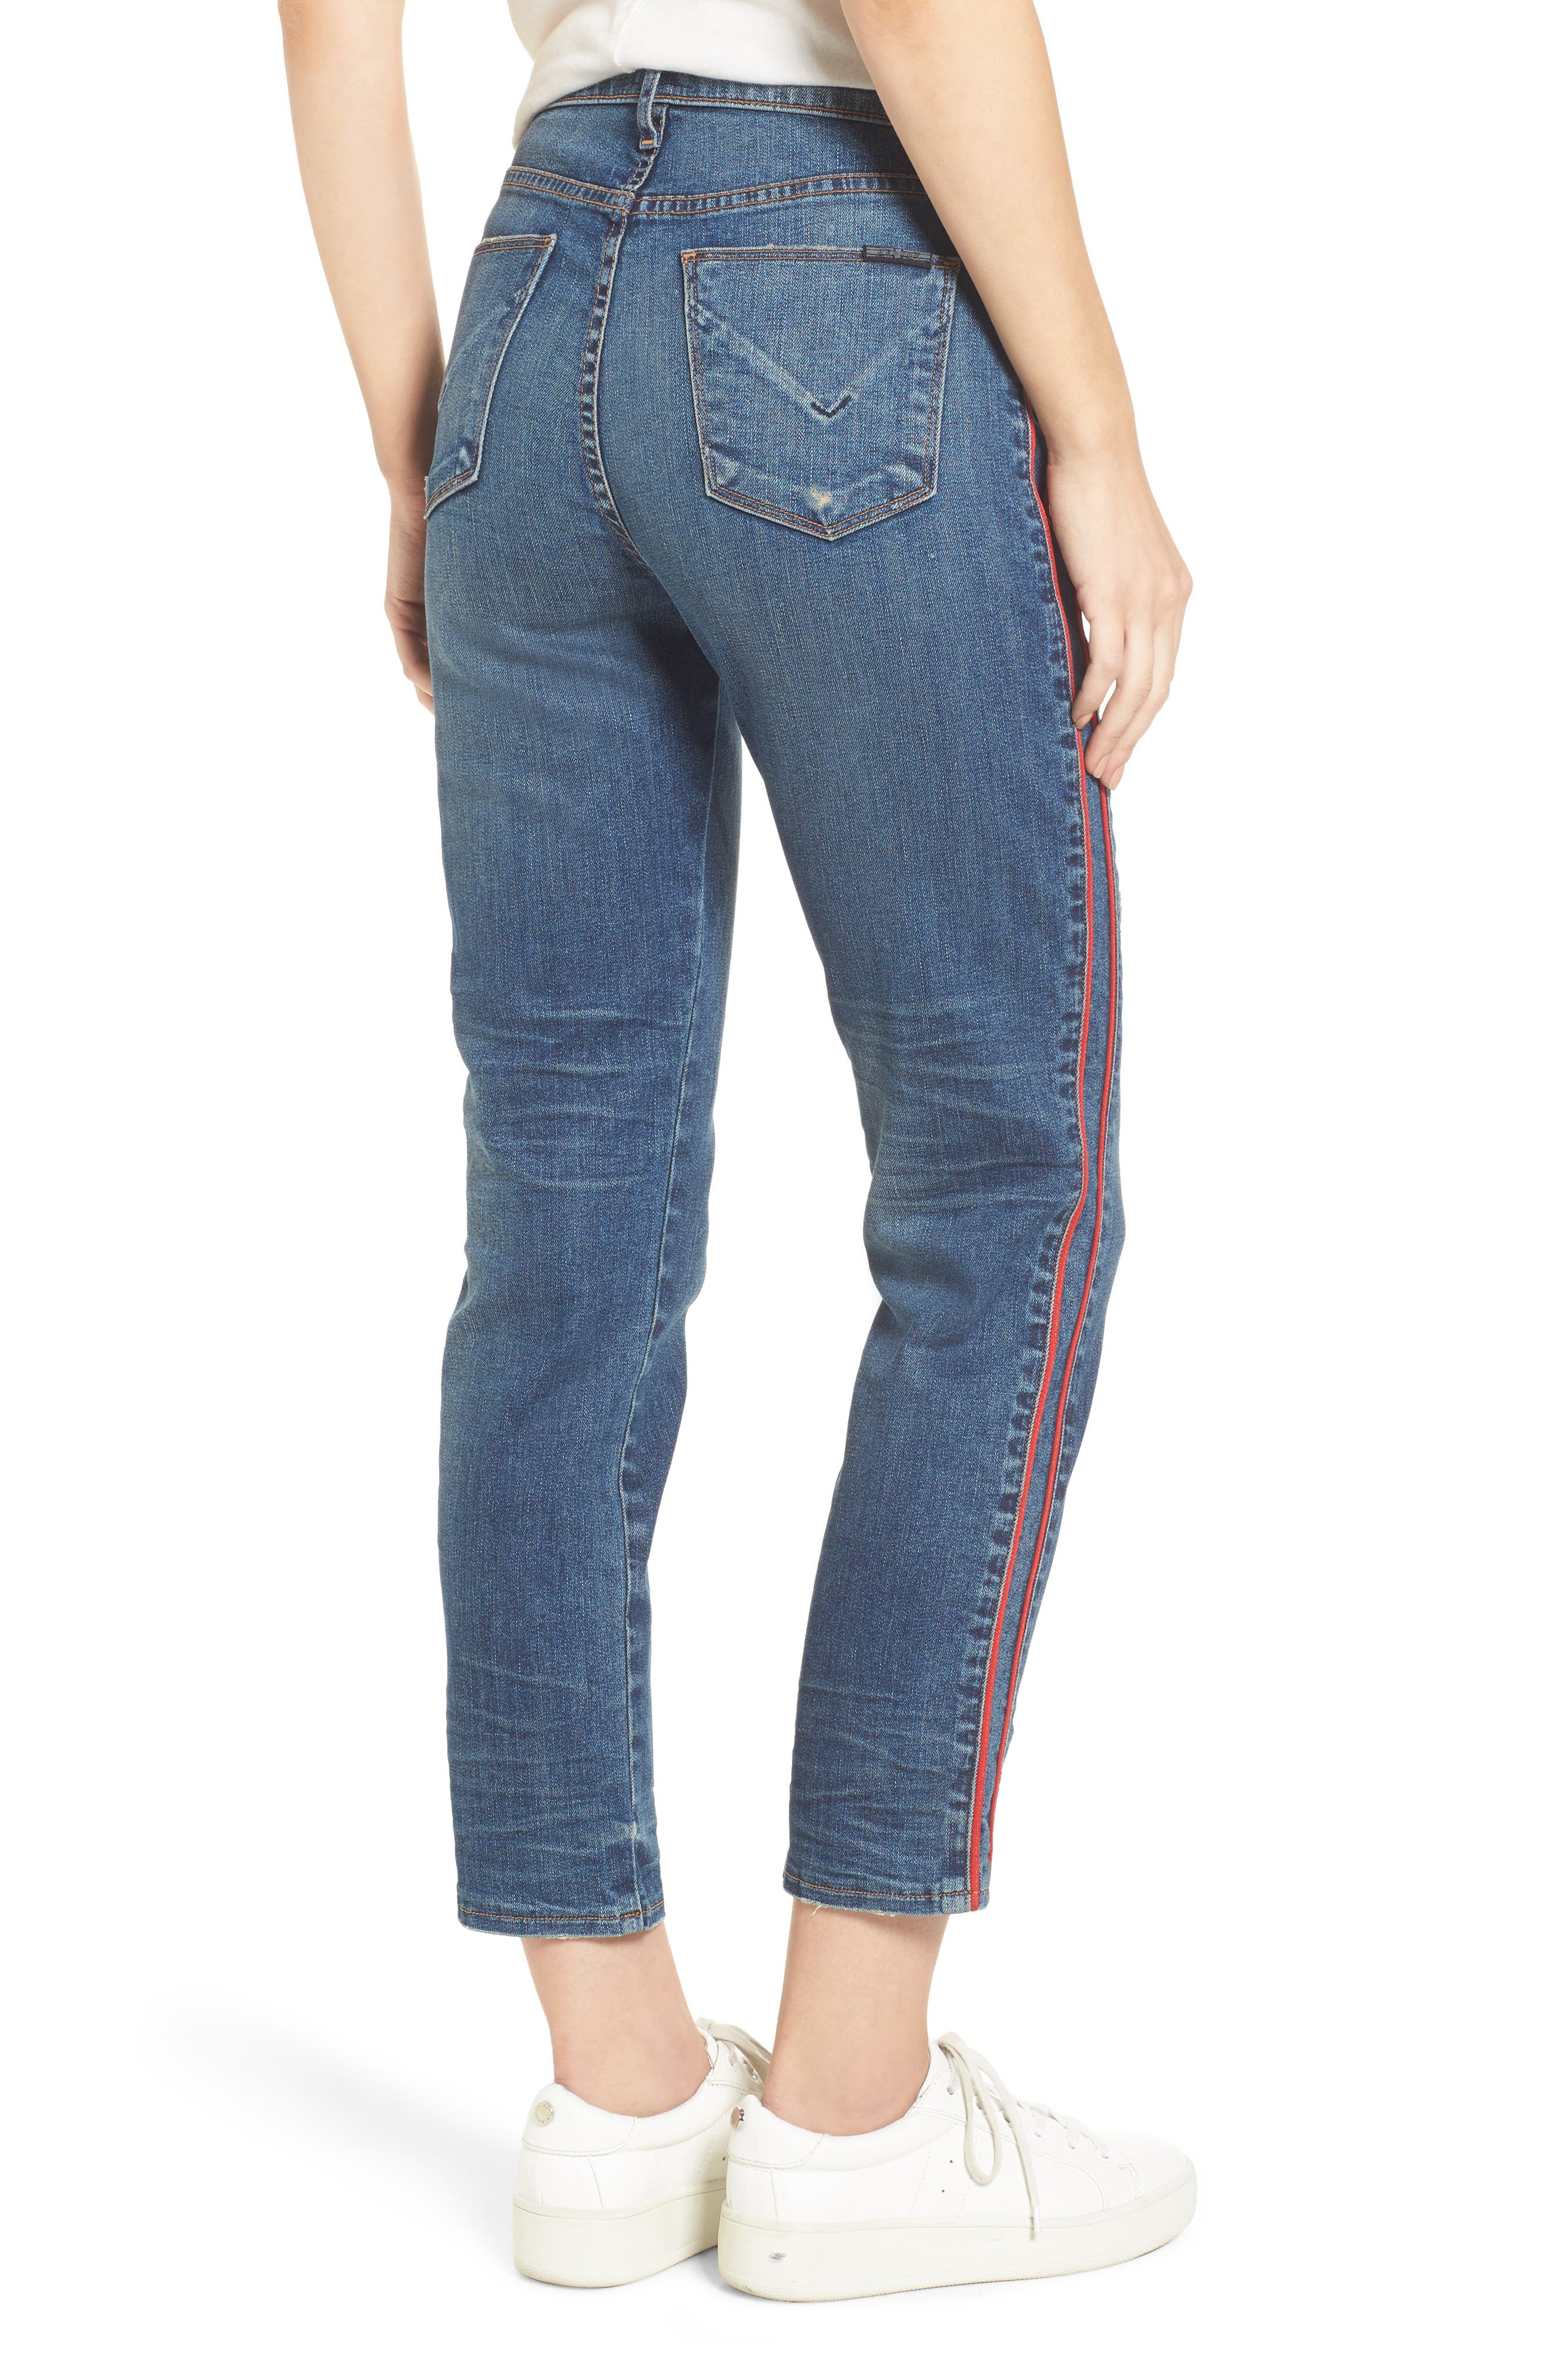 Zoeey High Waist Crop Jeans,                             Alternate thumbnail 2, color,                             Reform